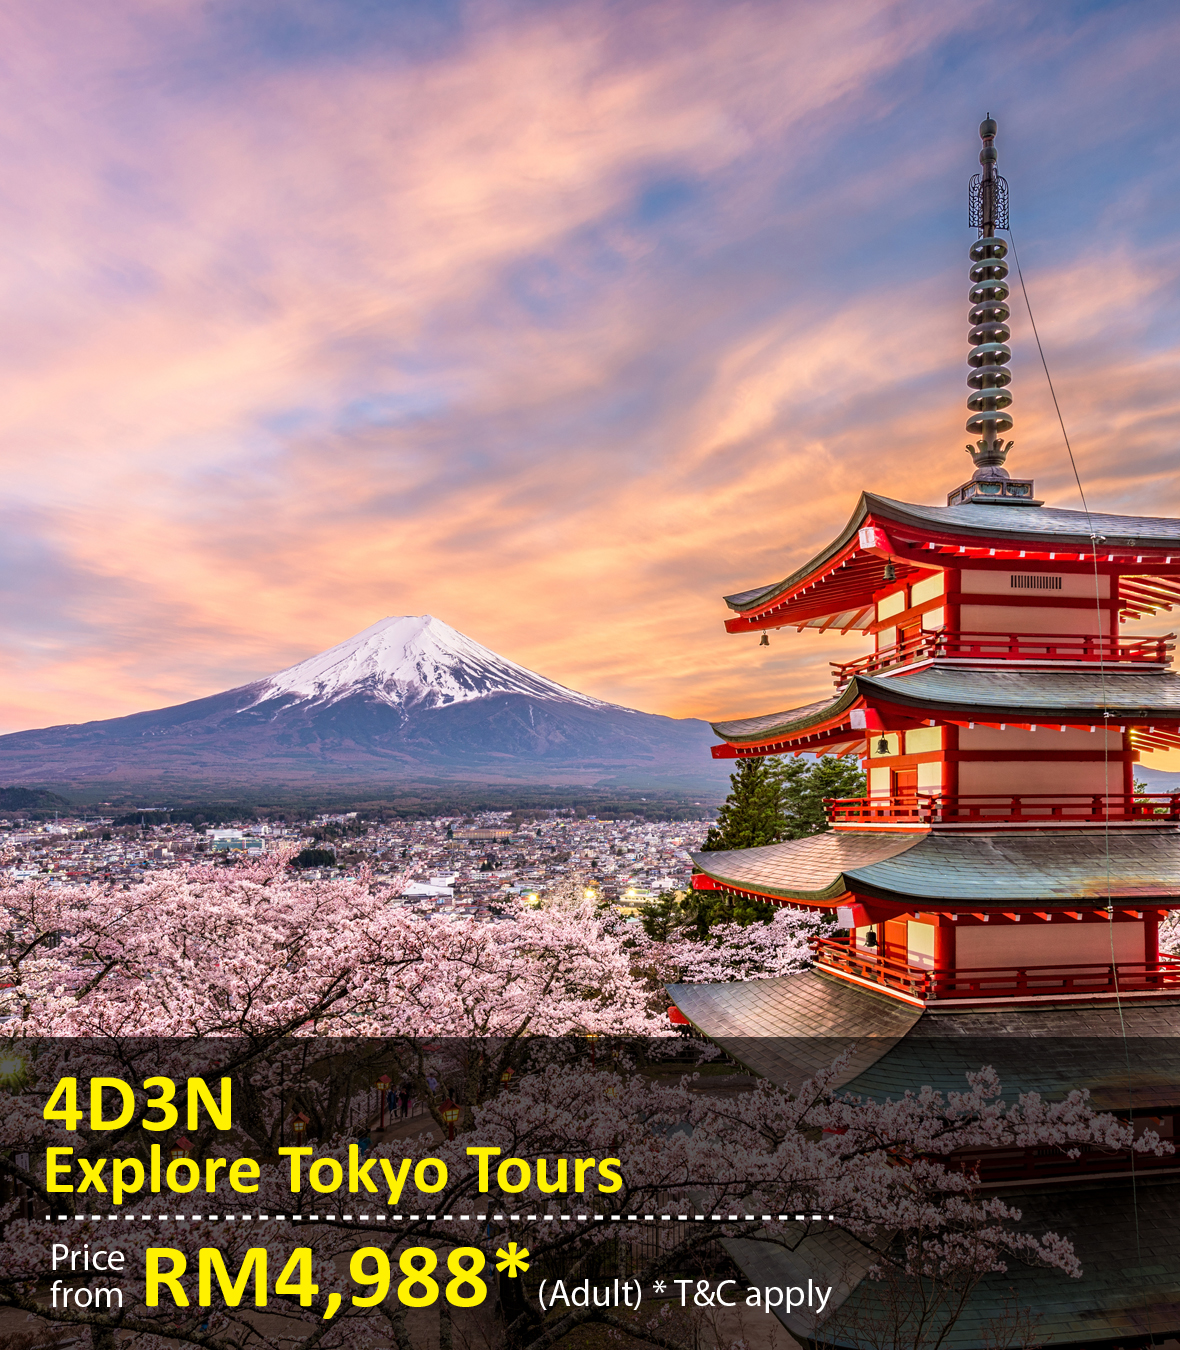 UOB Special Promo Package: 4 Days 3 Nights Tokyo Tours